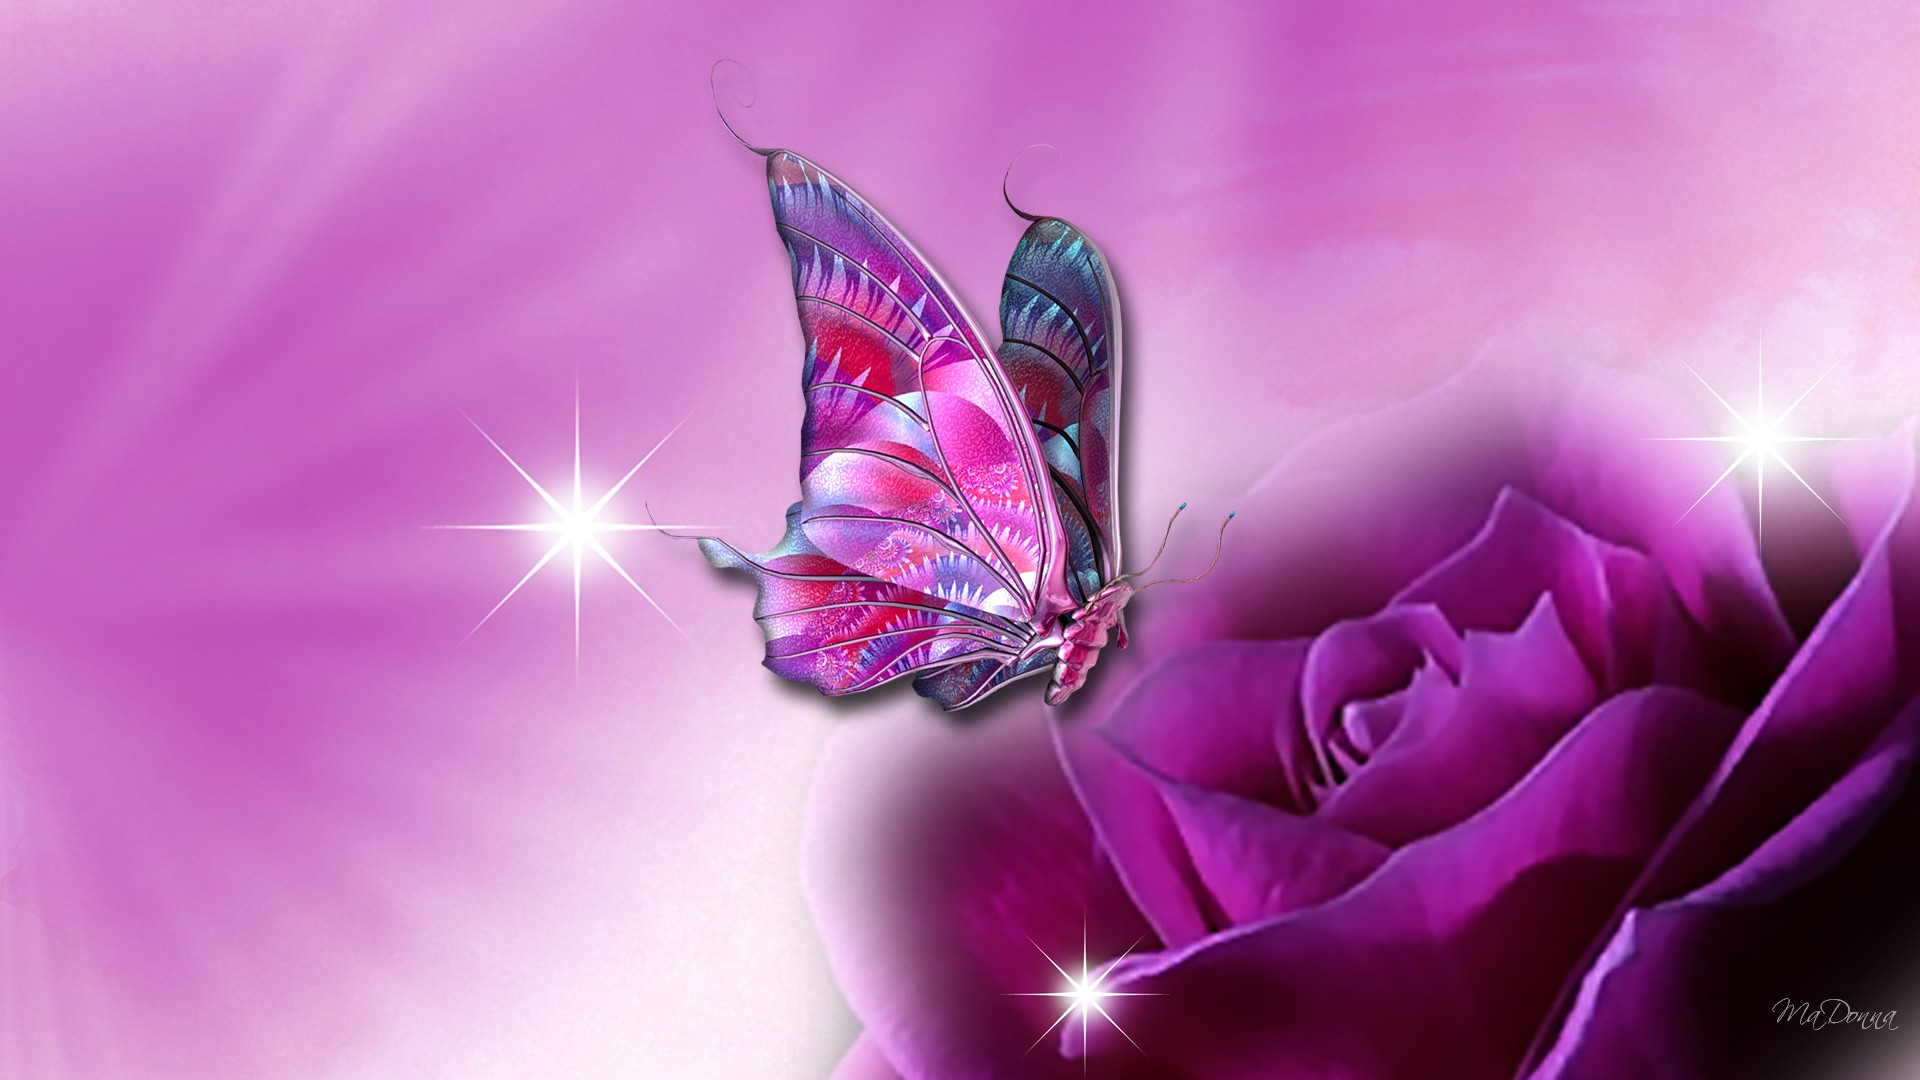 49 Butterfly Wallpapers For Laptop On Wallpapersafari